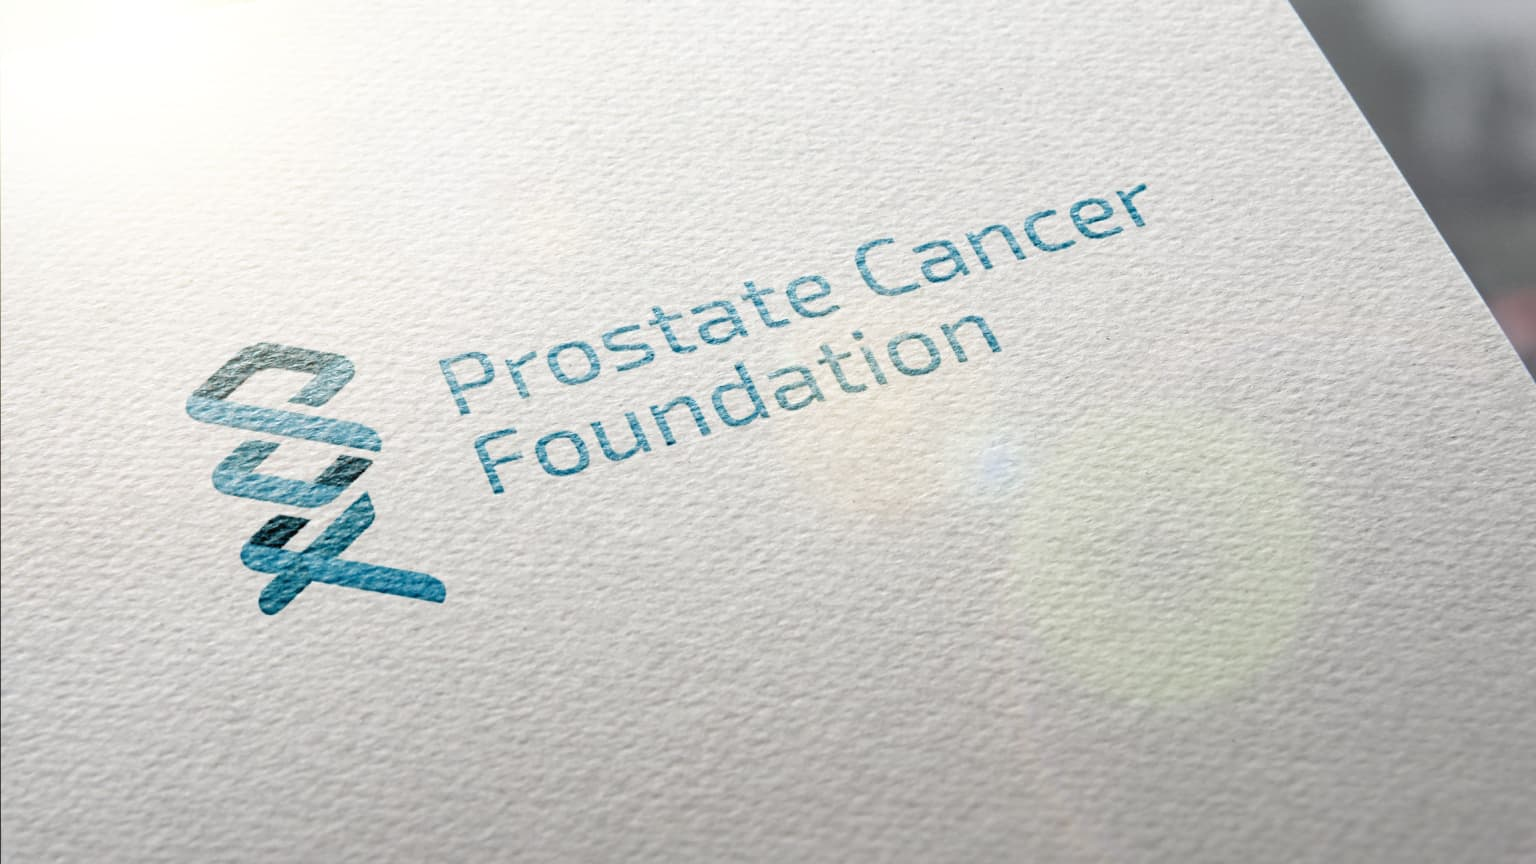 Prostate Cancer Foundation Brand Identity